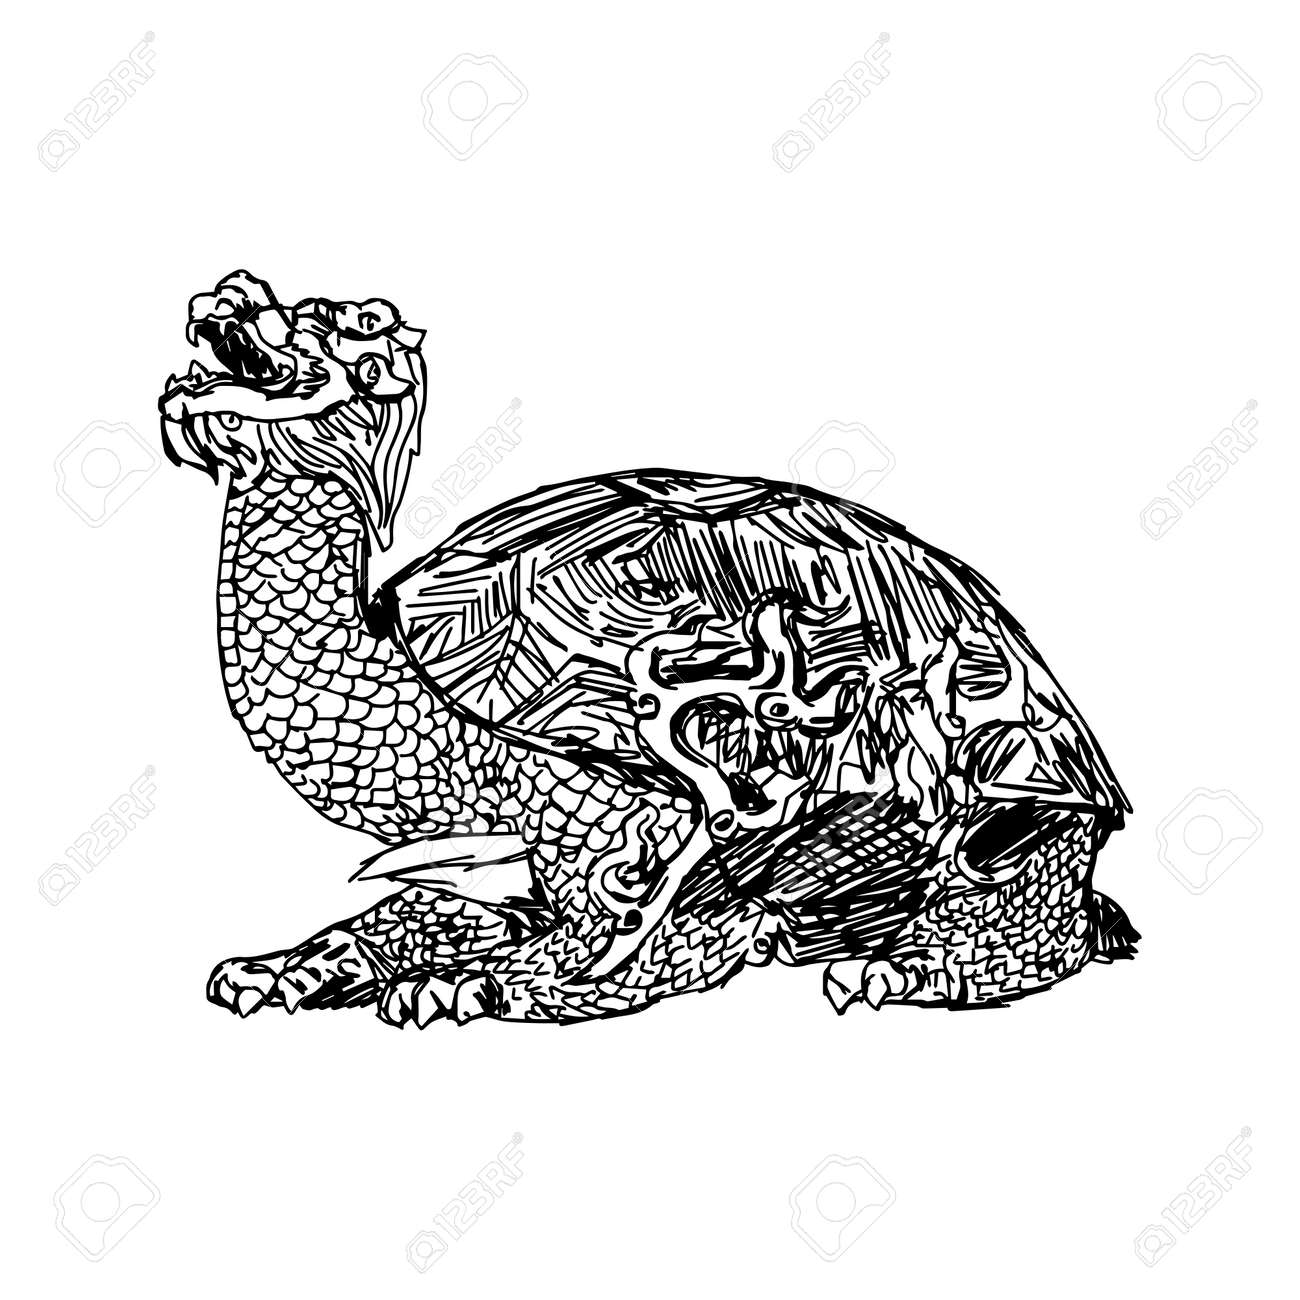 Illustration Vector Doodle Hand Drawn Of Sketch Bronze Statue A Turtle In Forbidden City